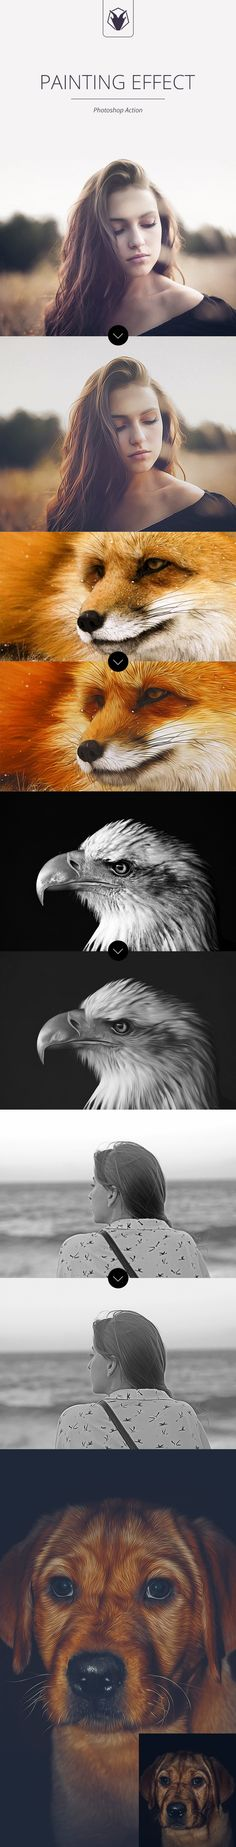 Painting Effect - Photoshop Action #photoeffect Download: http://graphicriver.net/item/painting-effect-photoshop-action/11684586?ref=ksioks